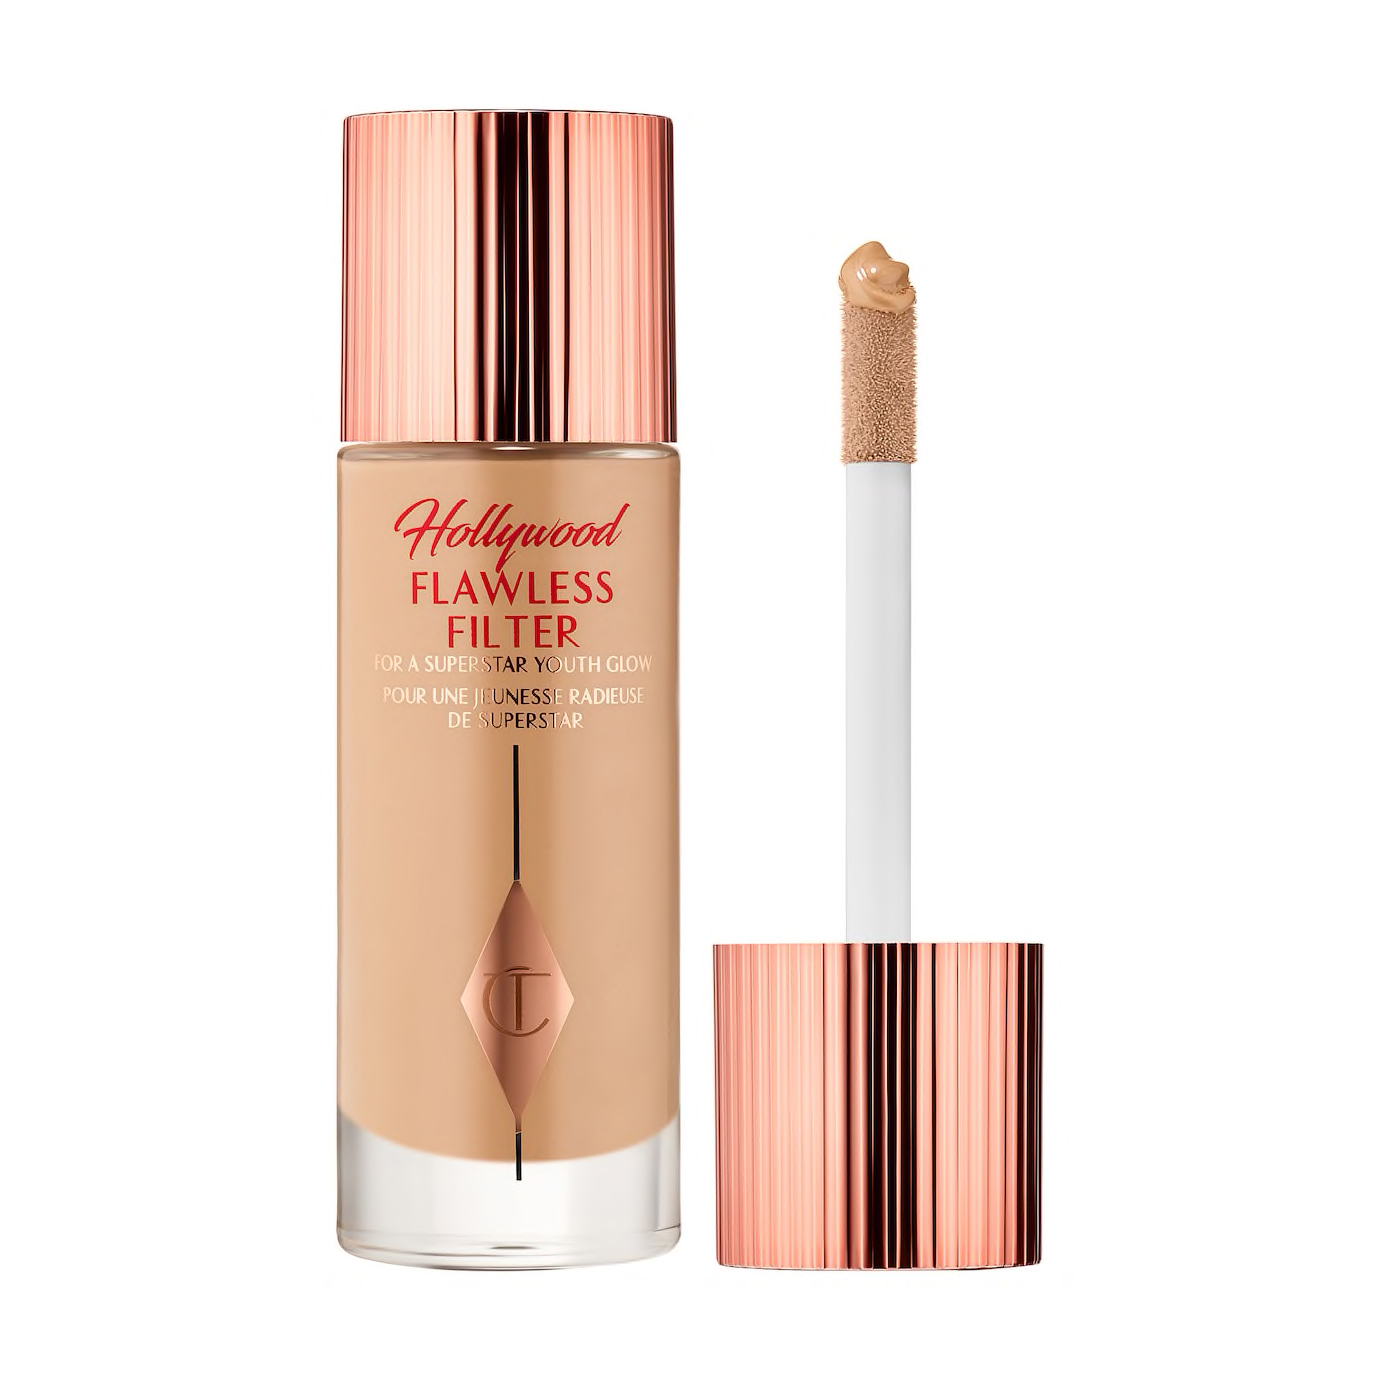 Charlotte Tilbury Hollywood Flawless Filer